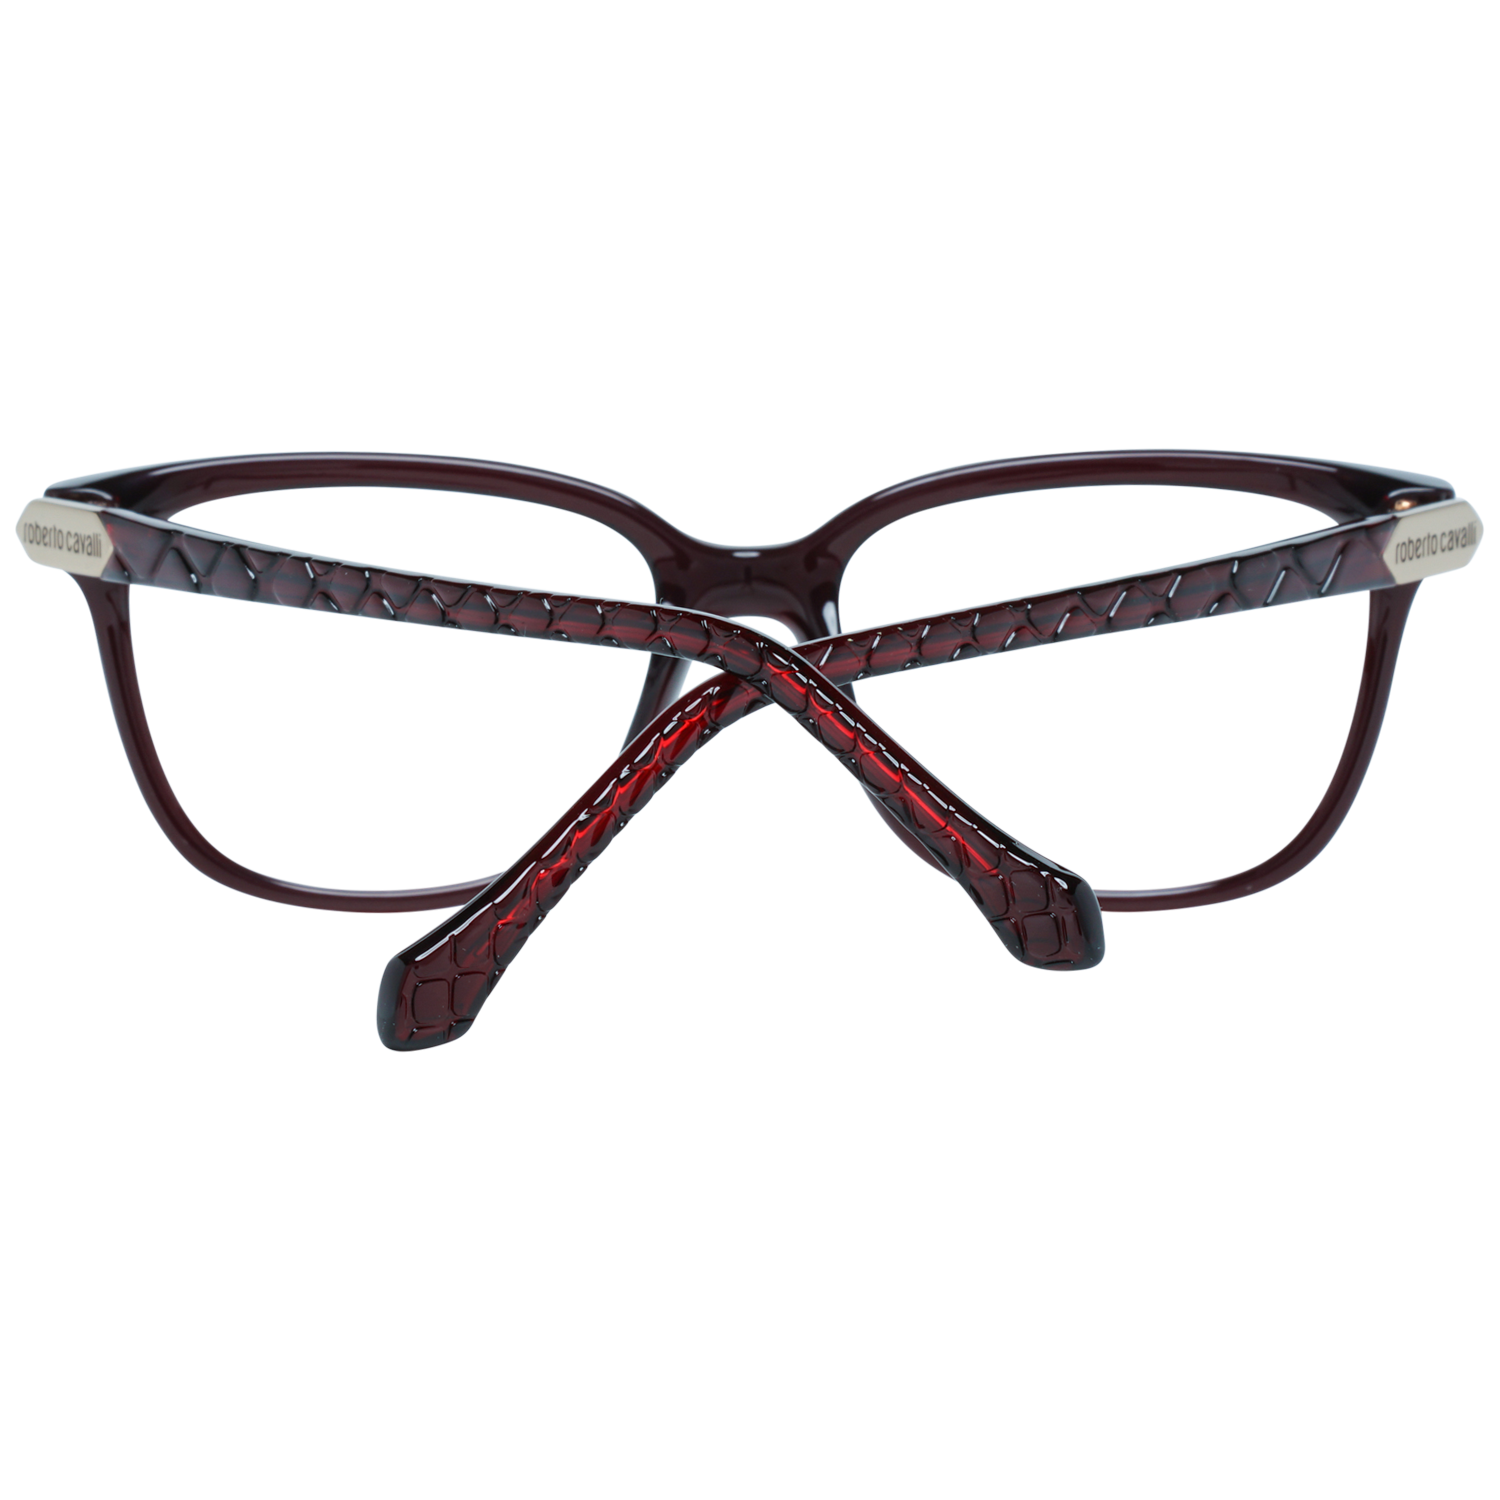 Roberto Cavalli Optical Frame RC0751 069 53 Women Red